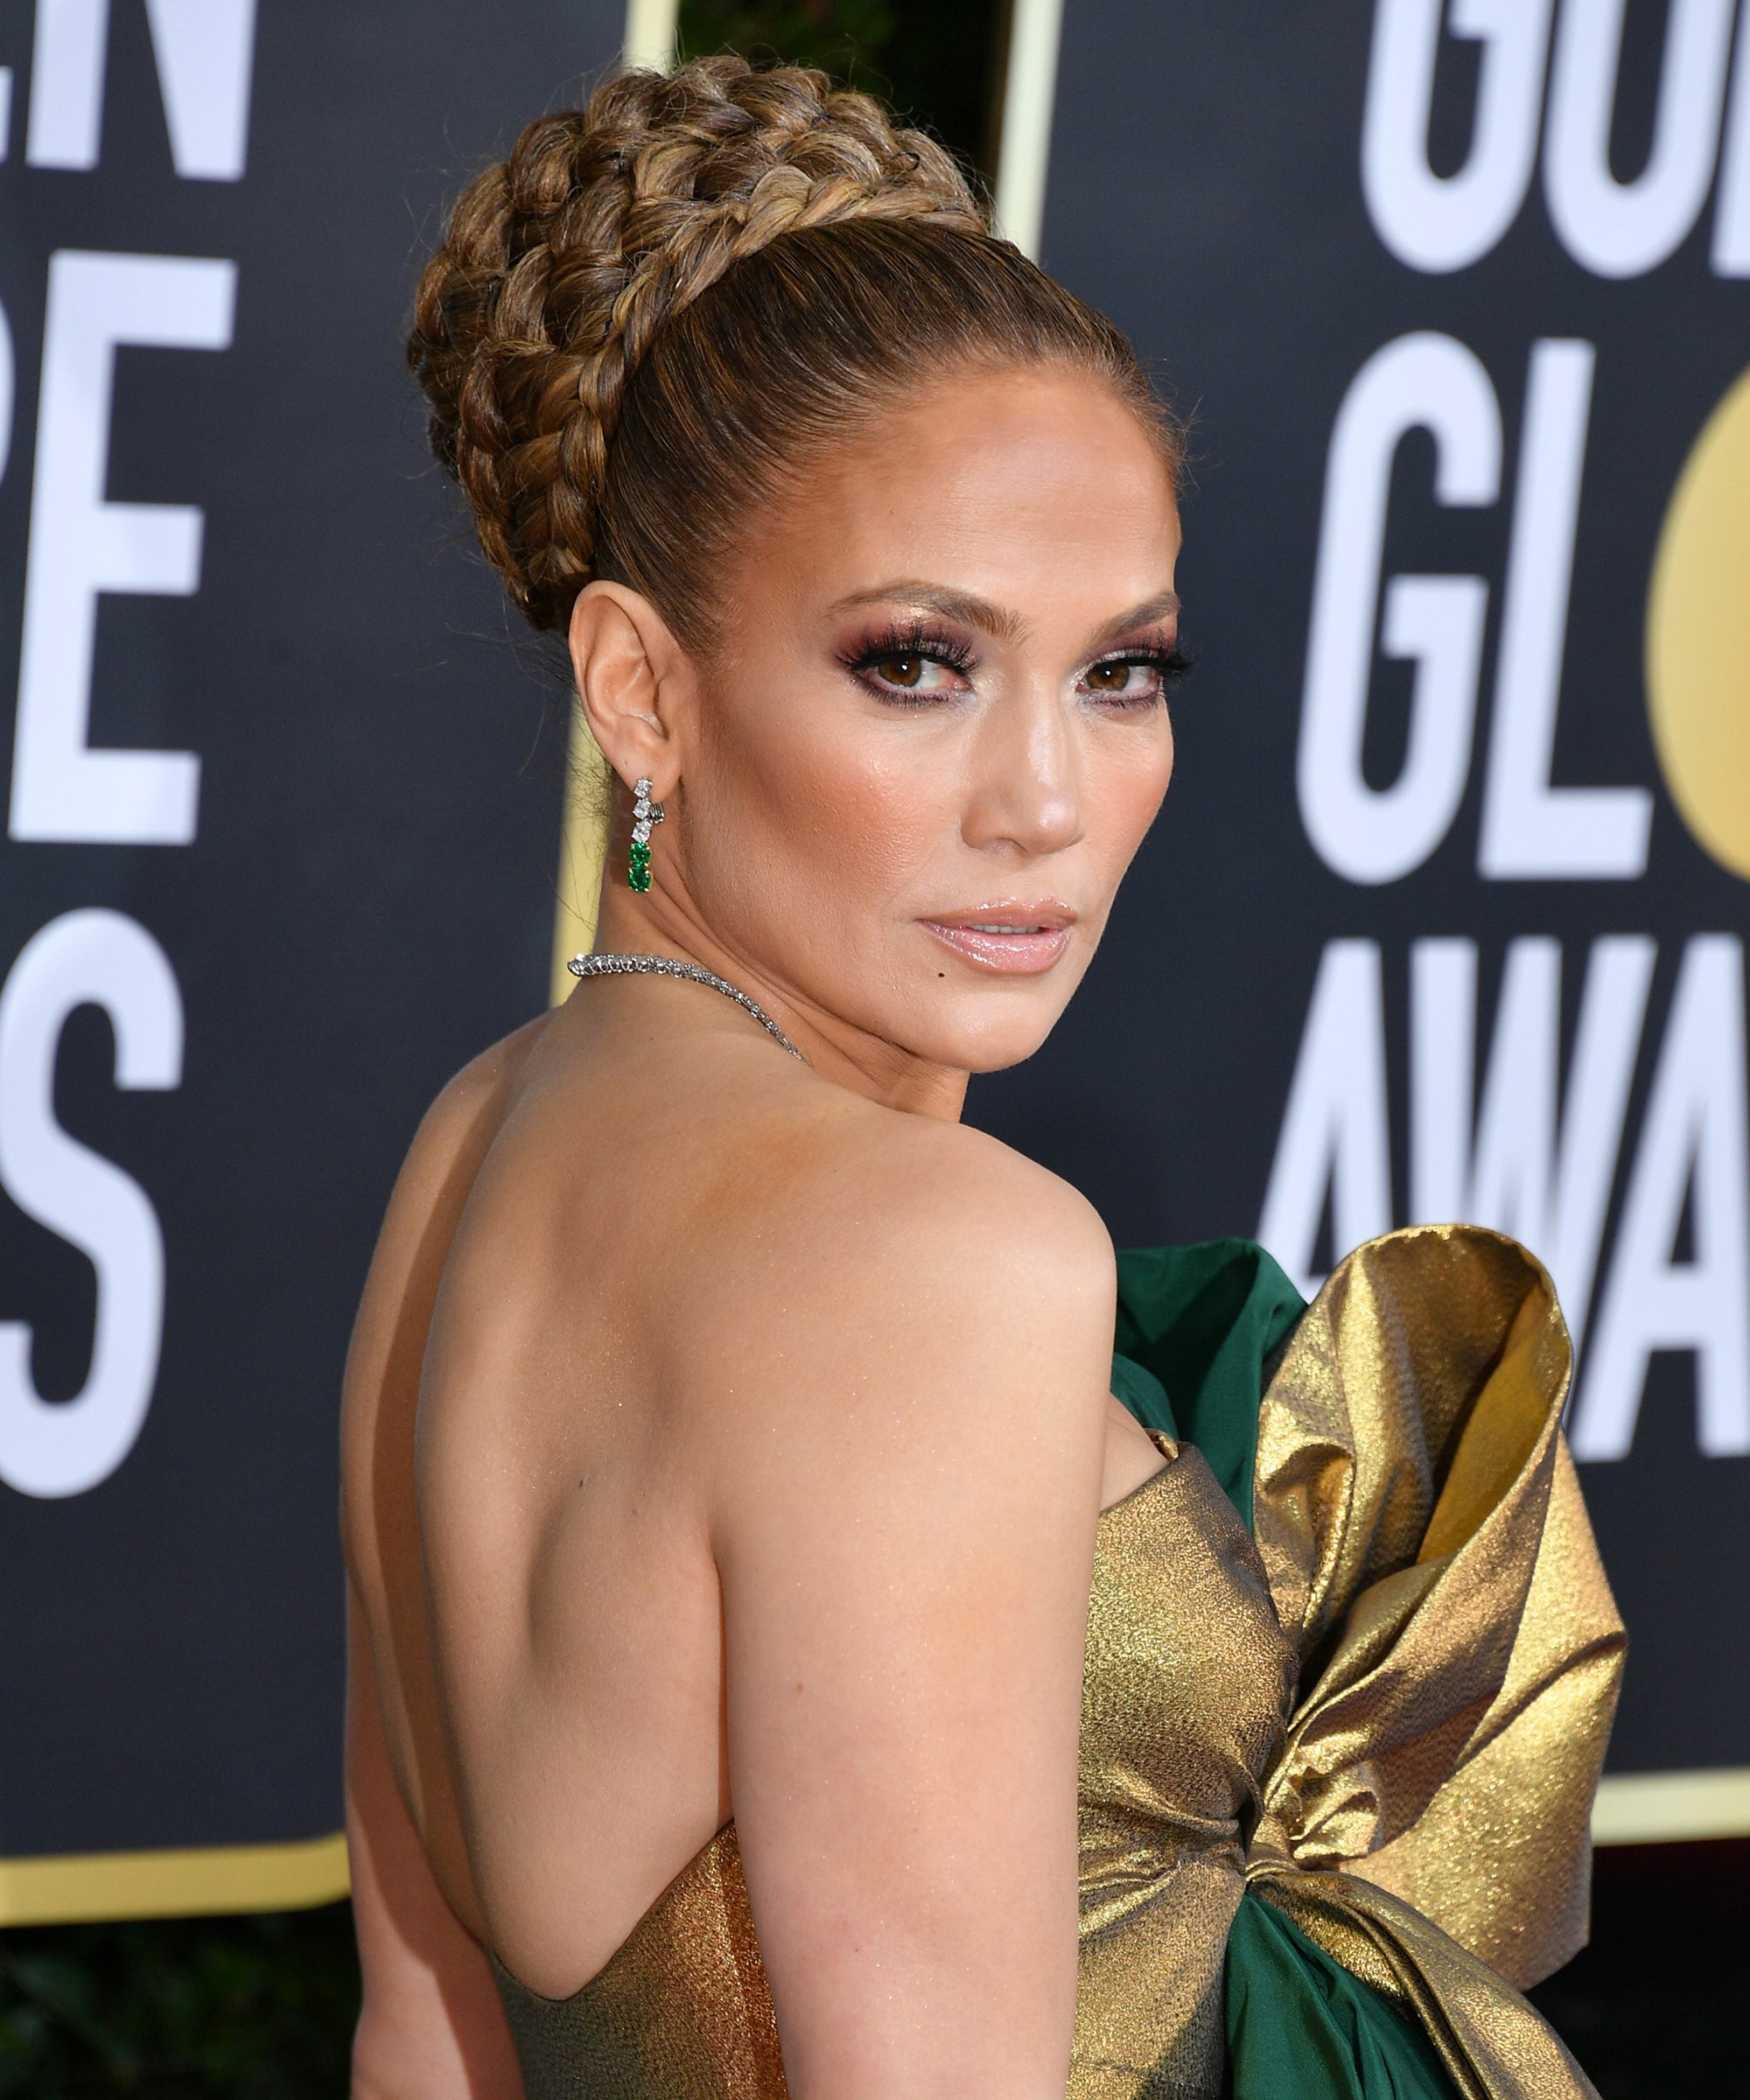 J.Lo's French Manicure Got The Prettiest After-Party Upgrade